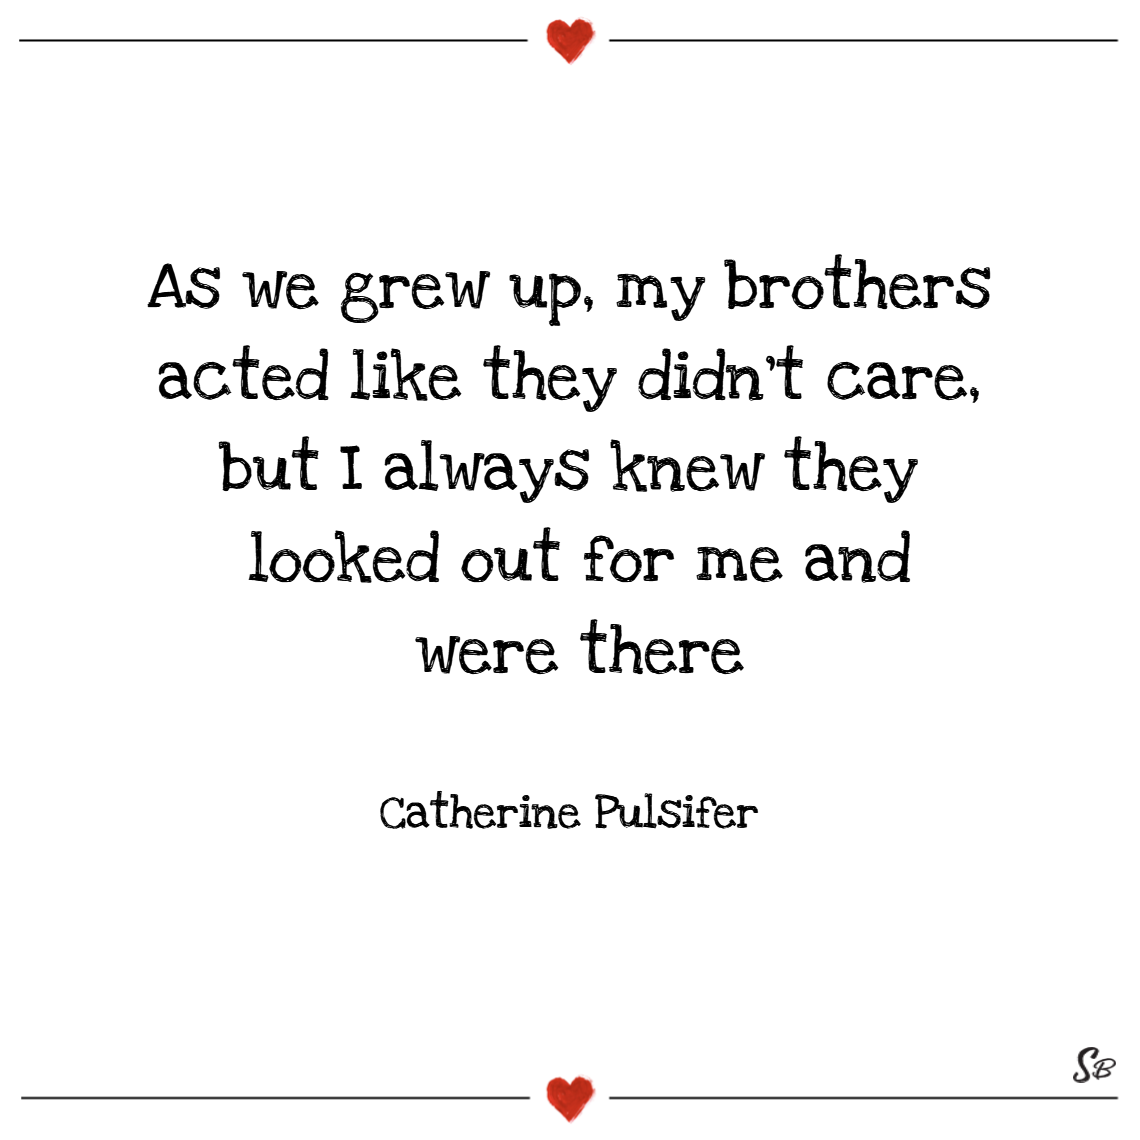 As we grew up, my brothers acted like they didn't care, but i always knew they looked out for me and were there! – catherine pulsifer